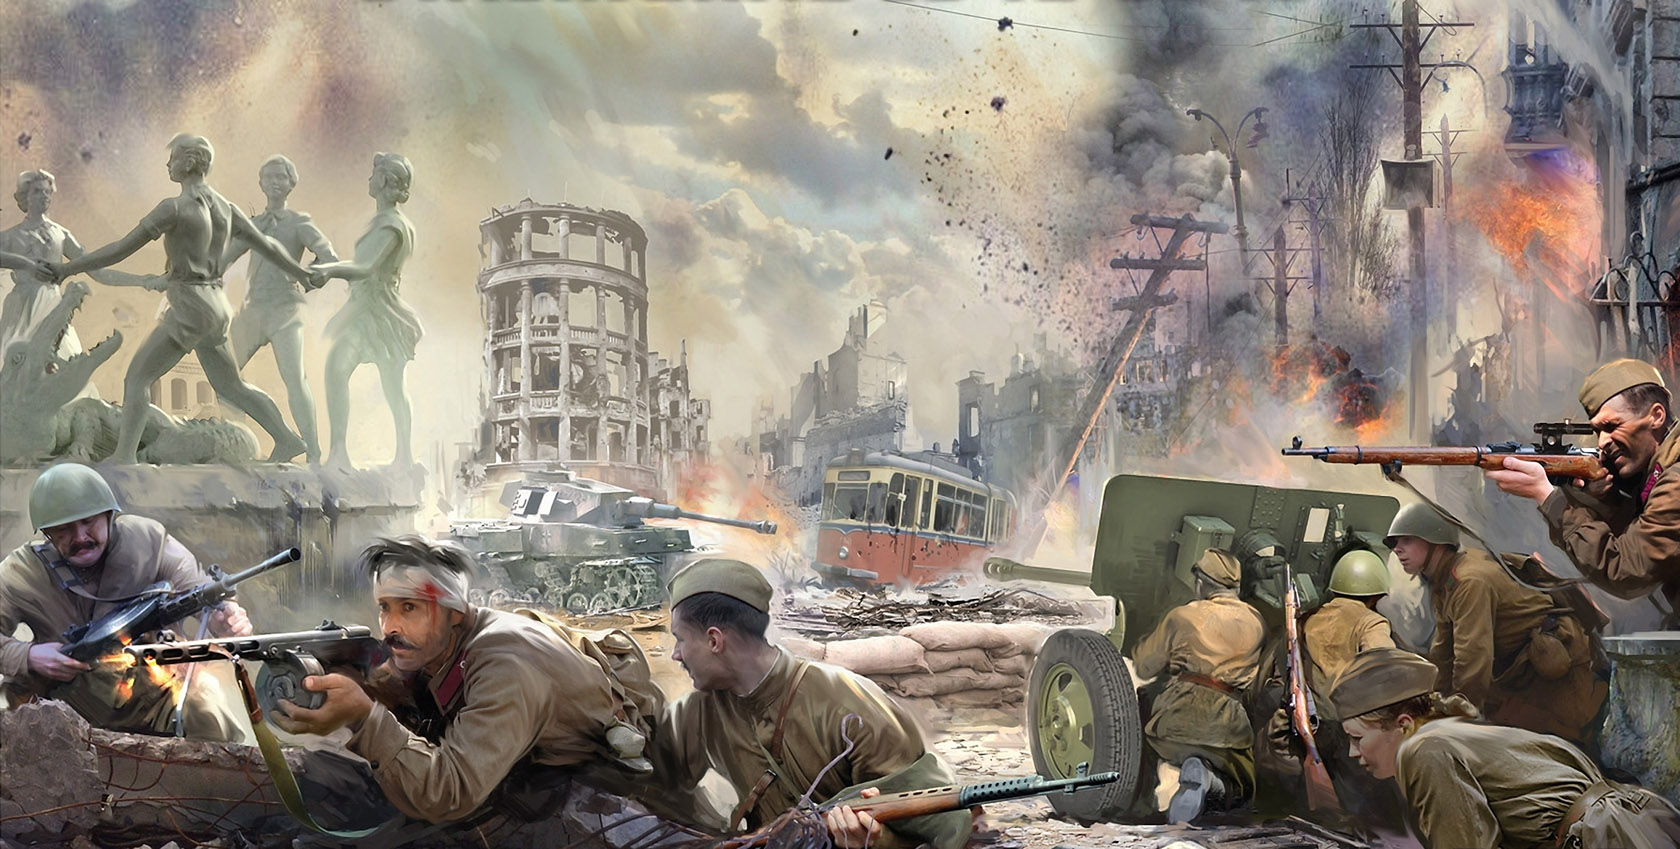 http://warwall.ru/Arts/8/Wallpaper_5417_Battle_Stalingrad.jpg